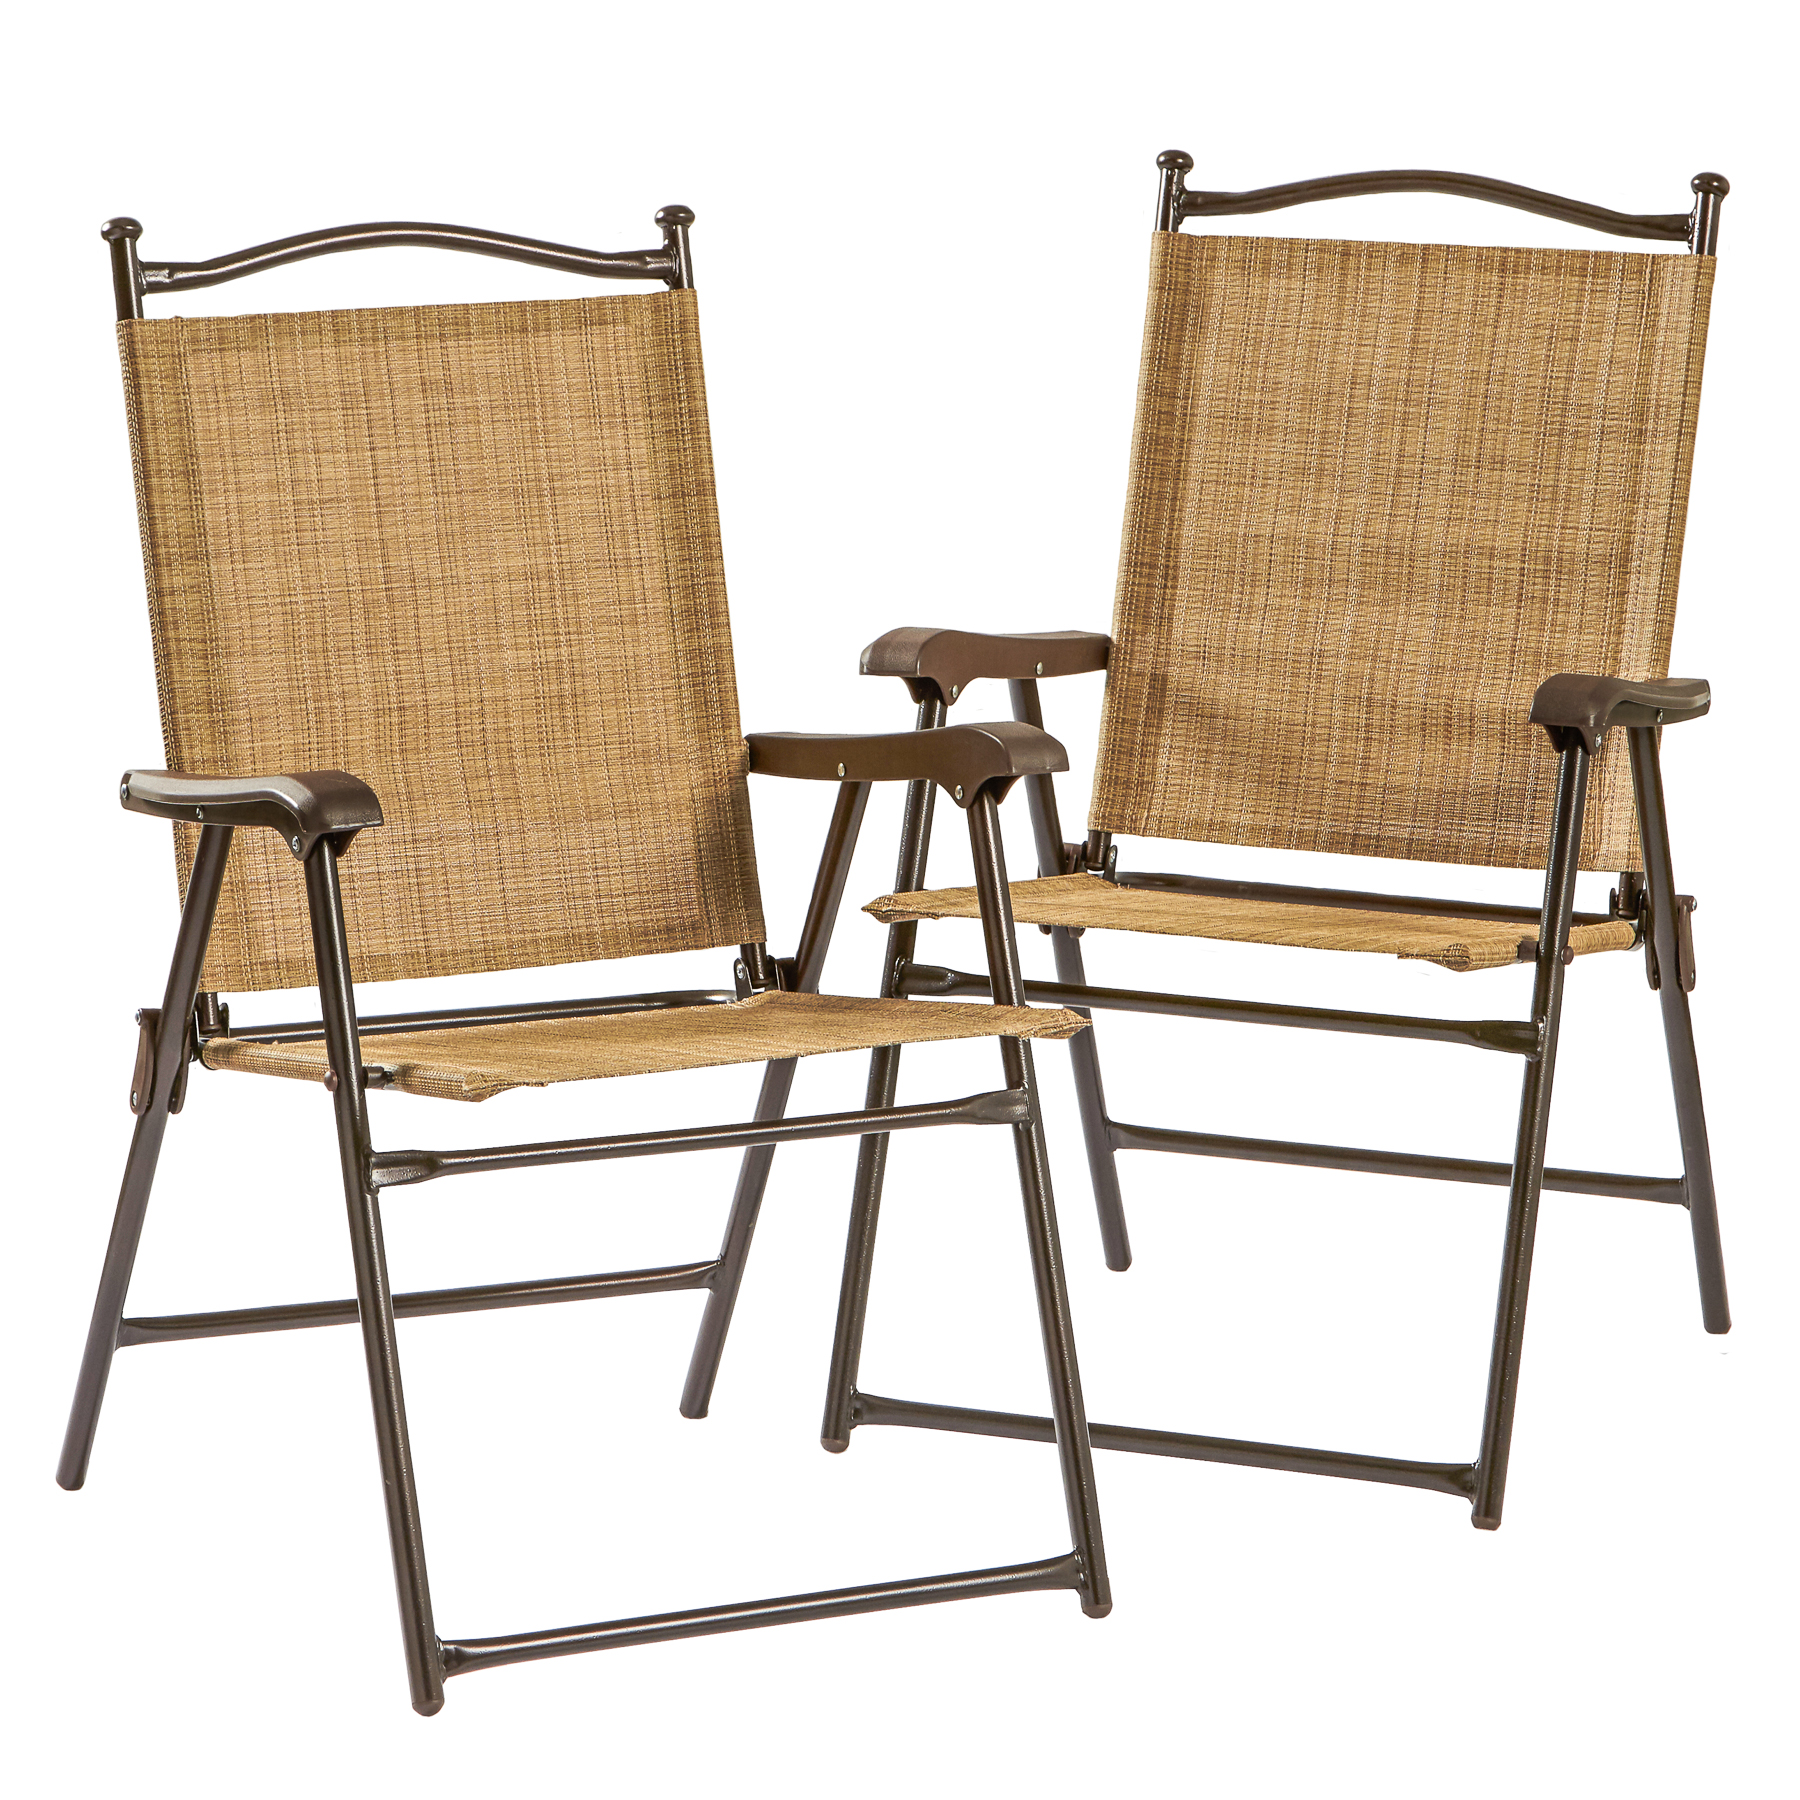 Greendale Home Fashions Sling Back Outdoor Chairs Set of